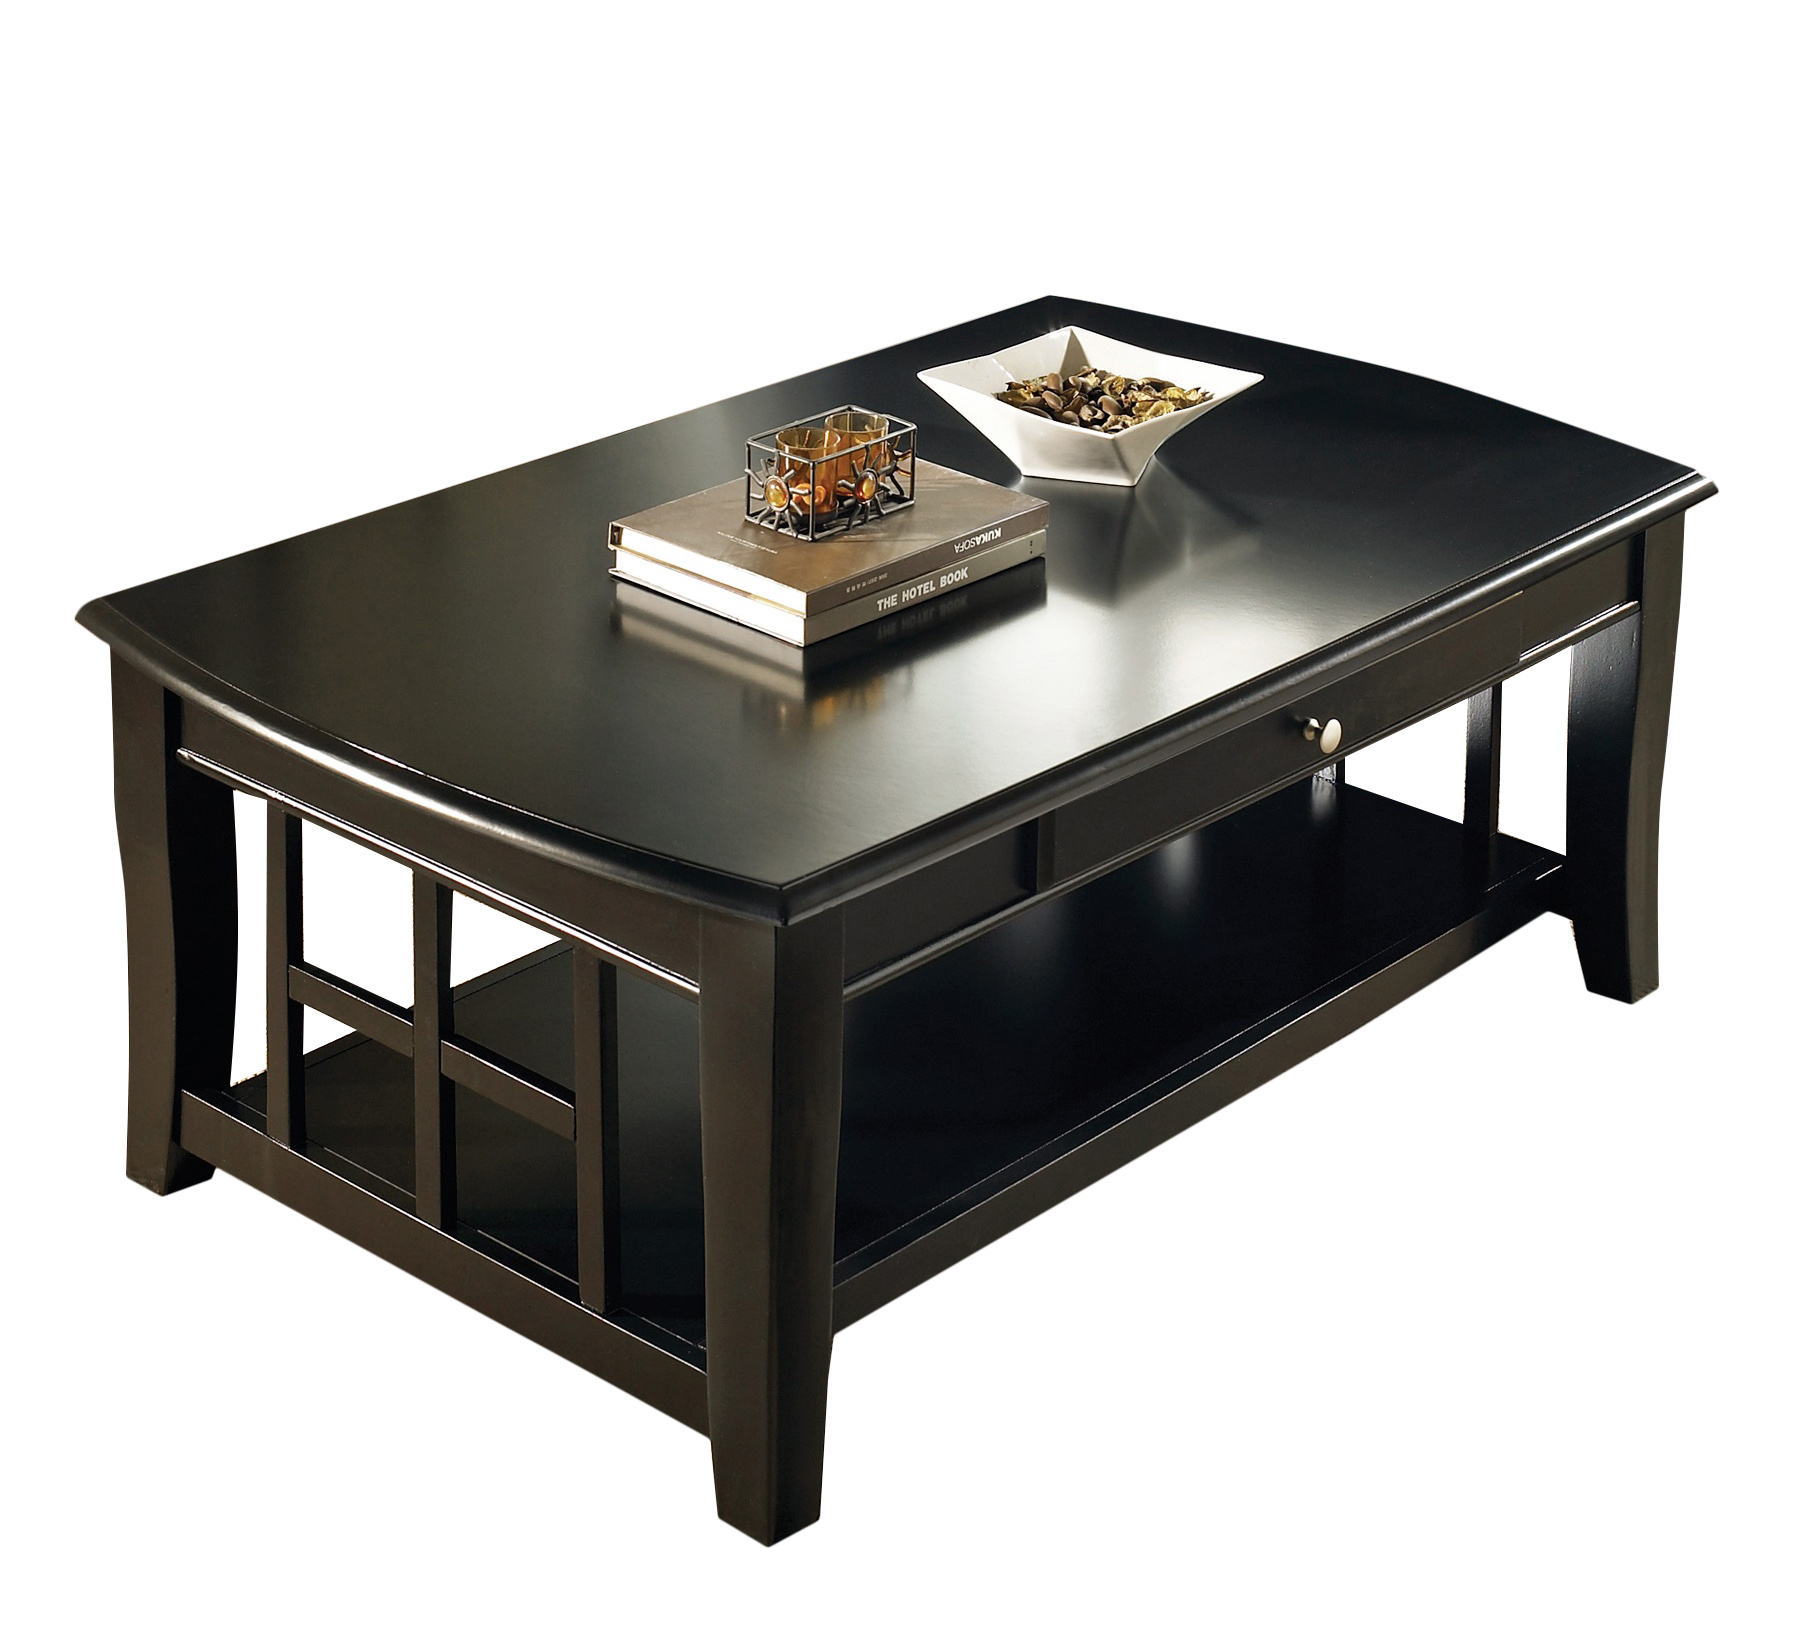 Image of Abigail Home Celina Cocktail Table